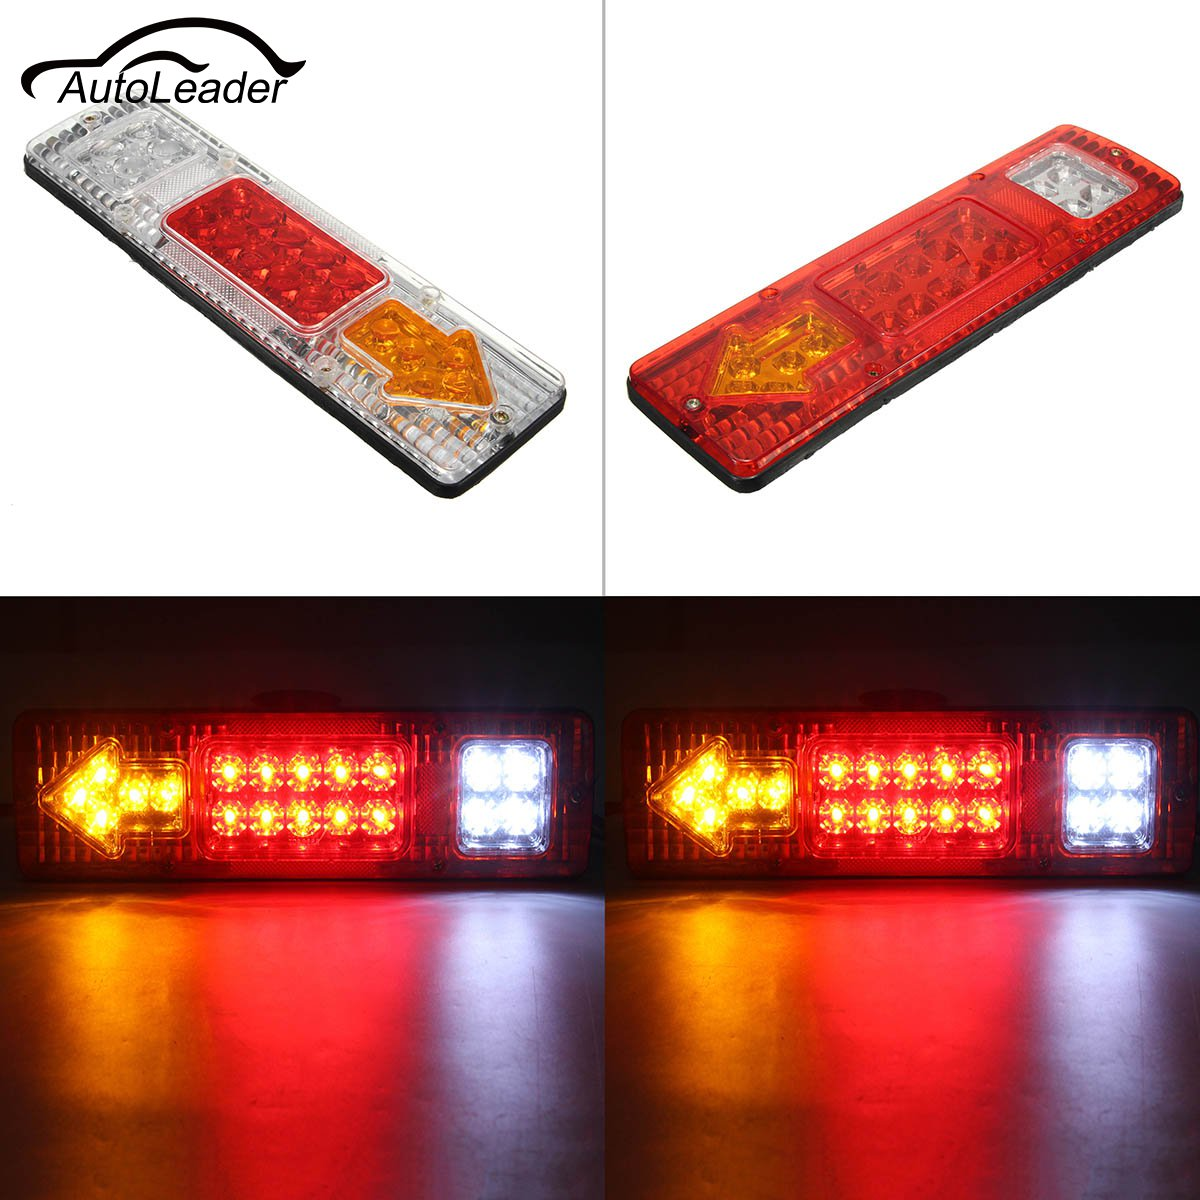 Automobiles & Motorcycles Nice Side Marker Light Lamp 1 Pair Dc 24v 6 Led Bus Van Truck Lorry Trailer Indicator 828 Promotion Truck Light System